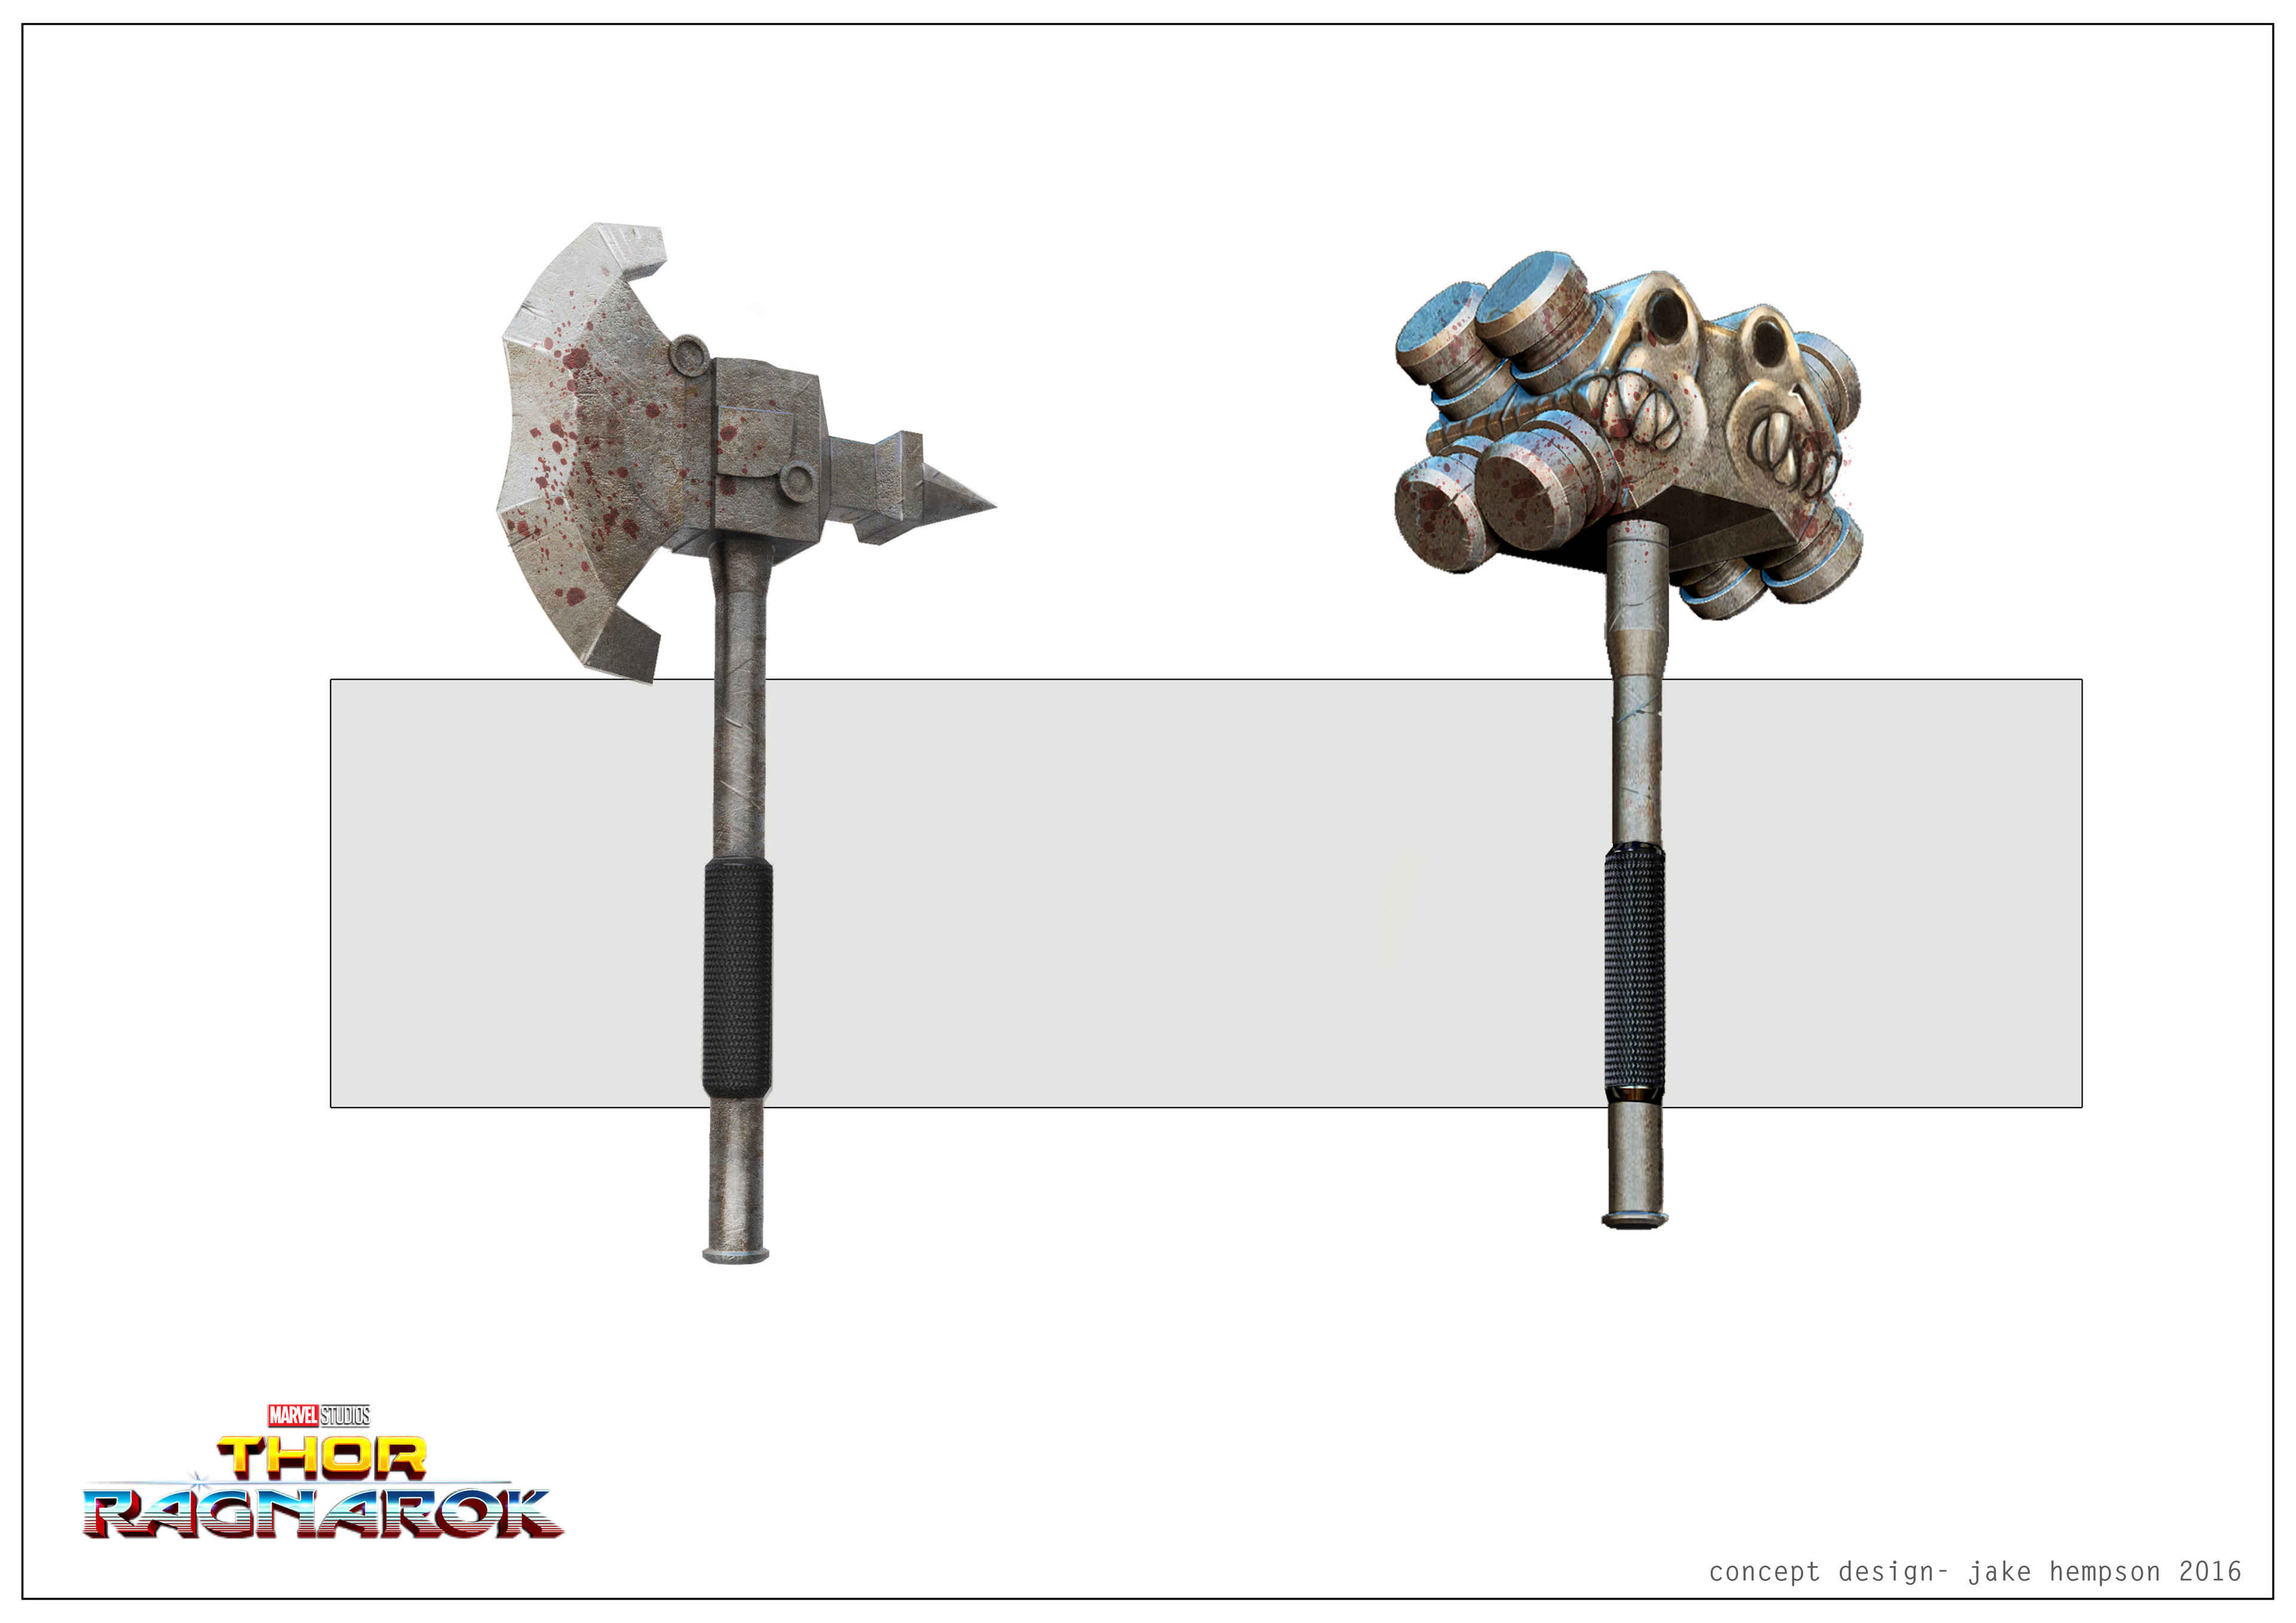 Hulk arena  weapons, hammer and  axe  (axe was replaced in post).